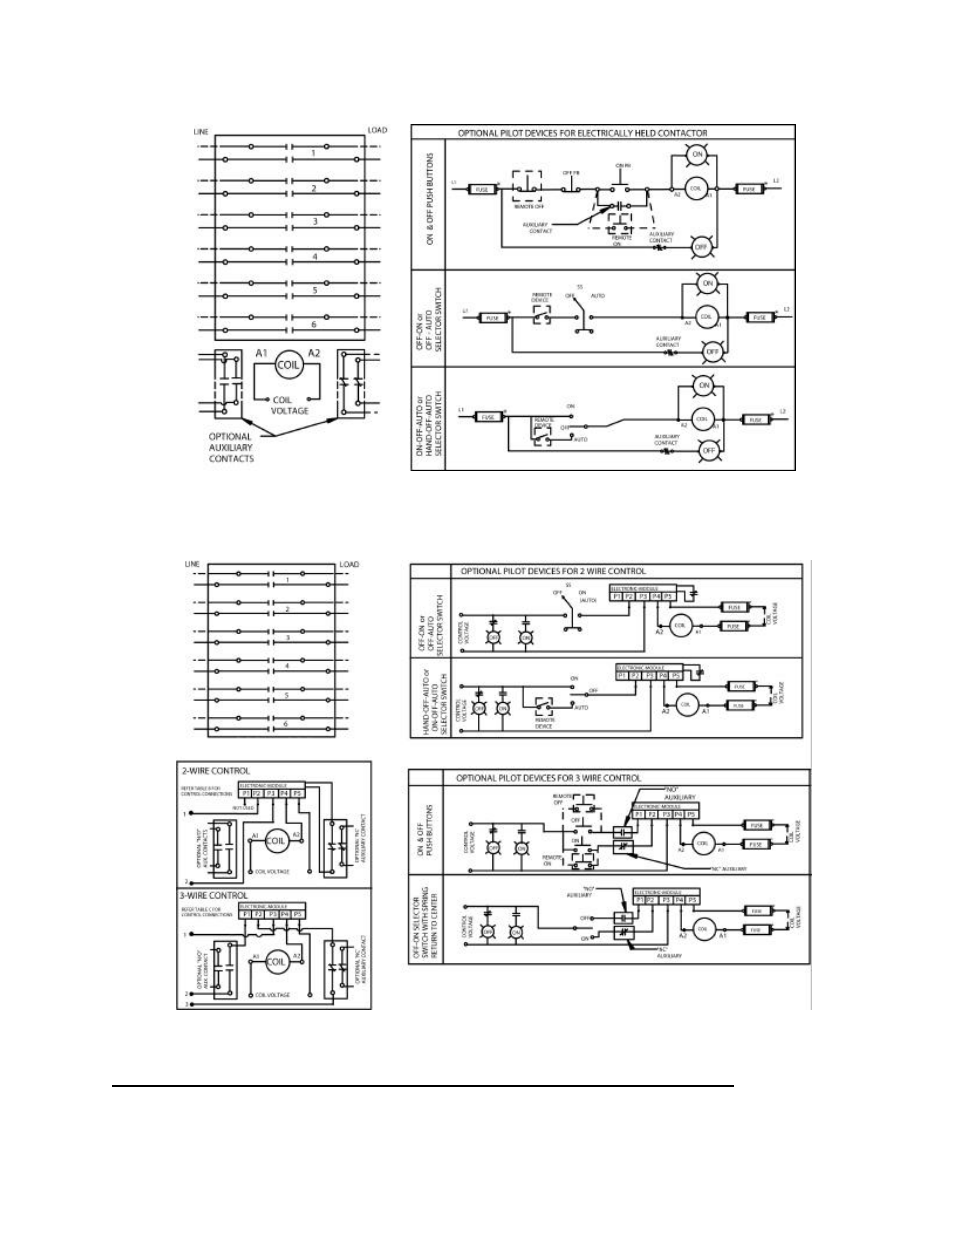 ge wiring diagram symbols schema diagram preview GE Appliances Diagrams